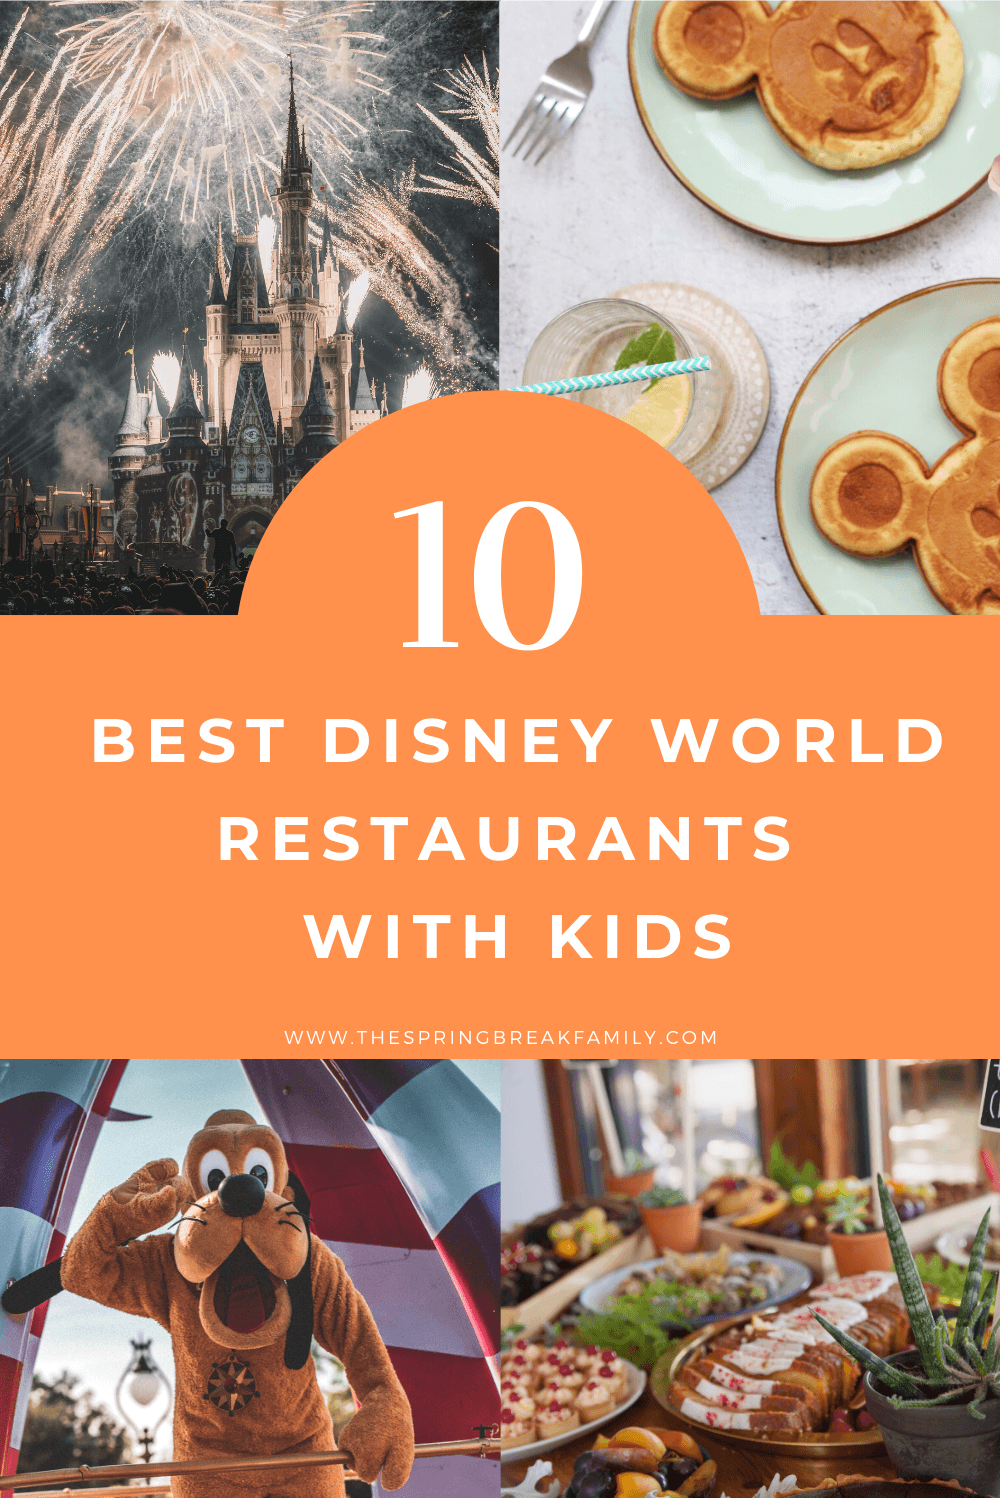 10 Of The Best Restaurants In Disney World For Kids In 2020 Disney World Restaurants Best Disney World Restaurants Disney World